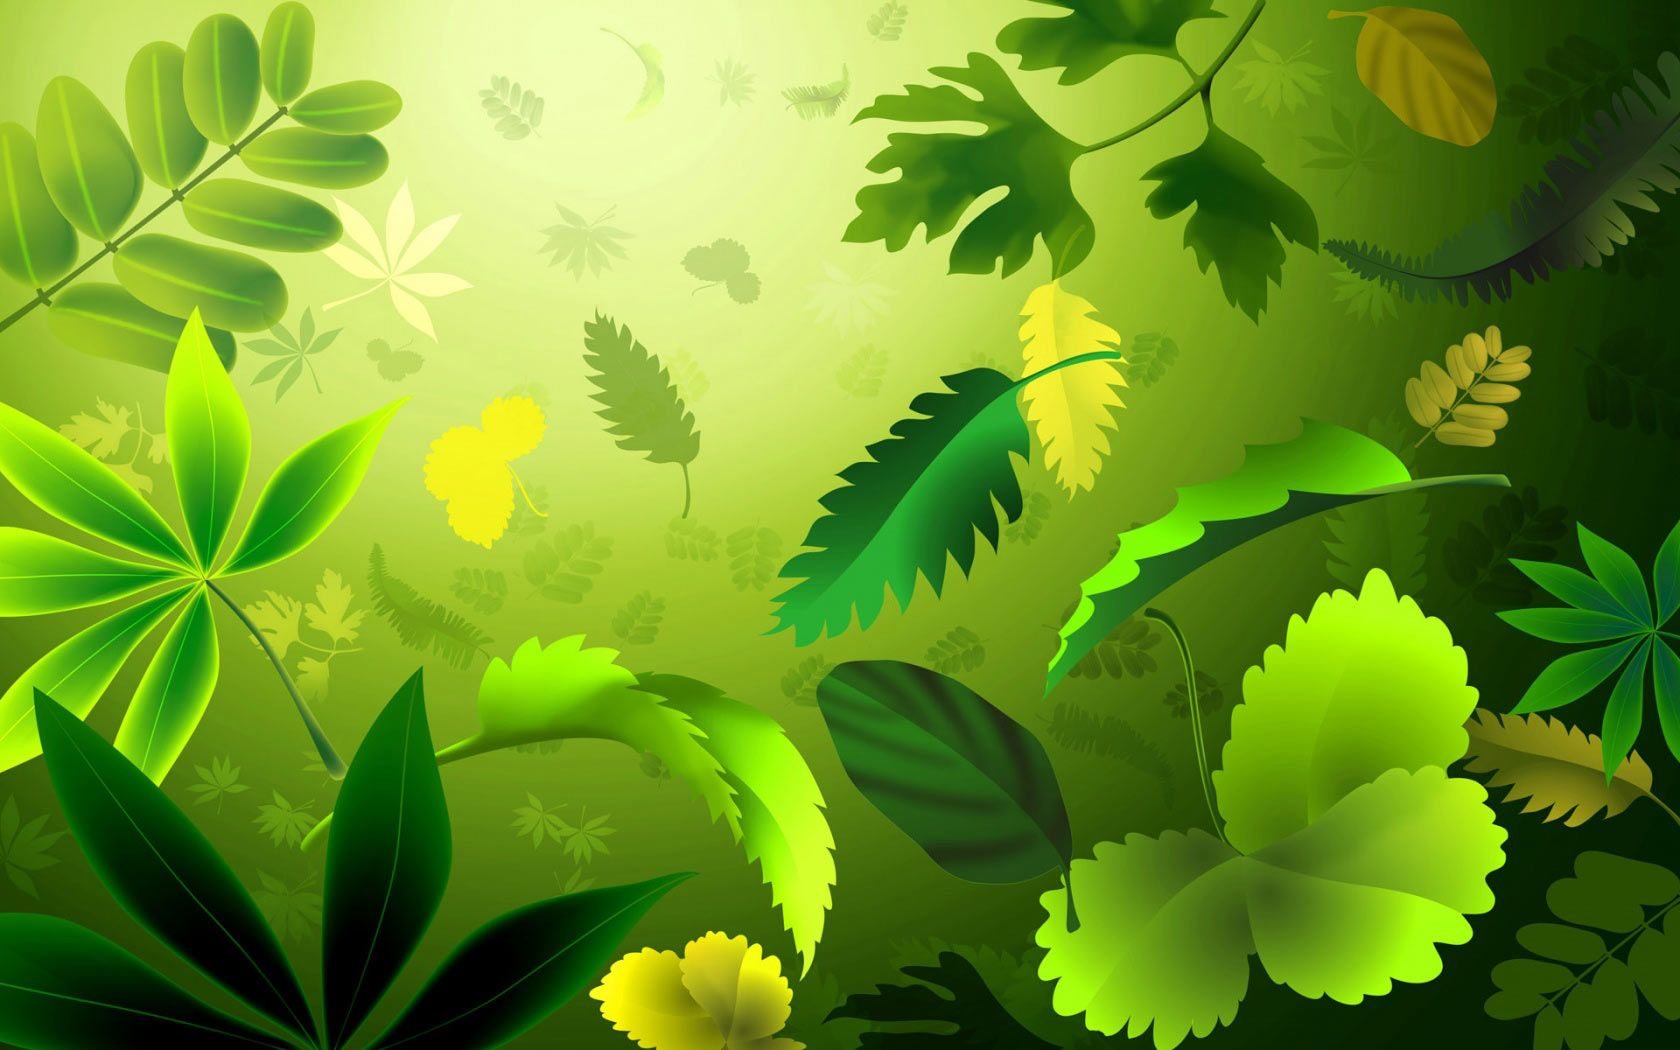 Nature clipart greenery. Free background desktop wallpaper banner royalty free library